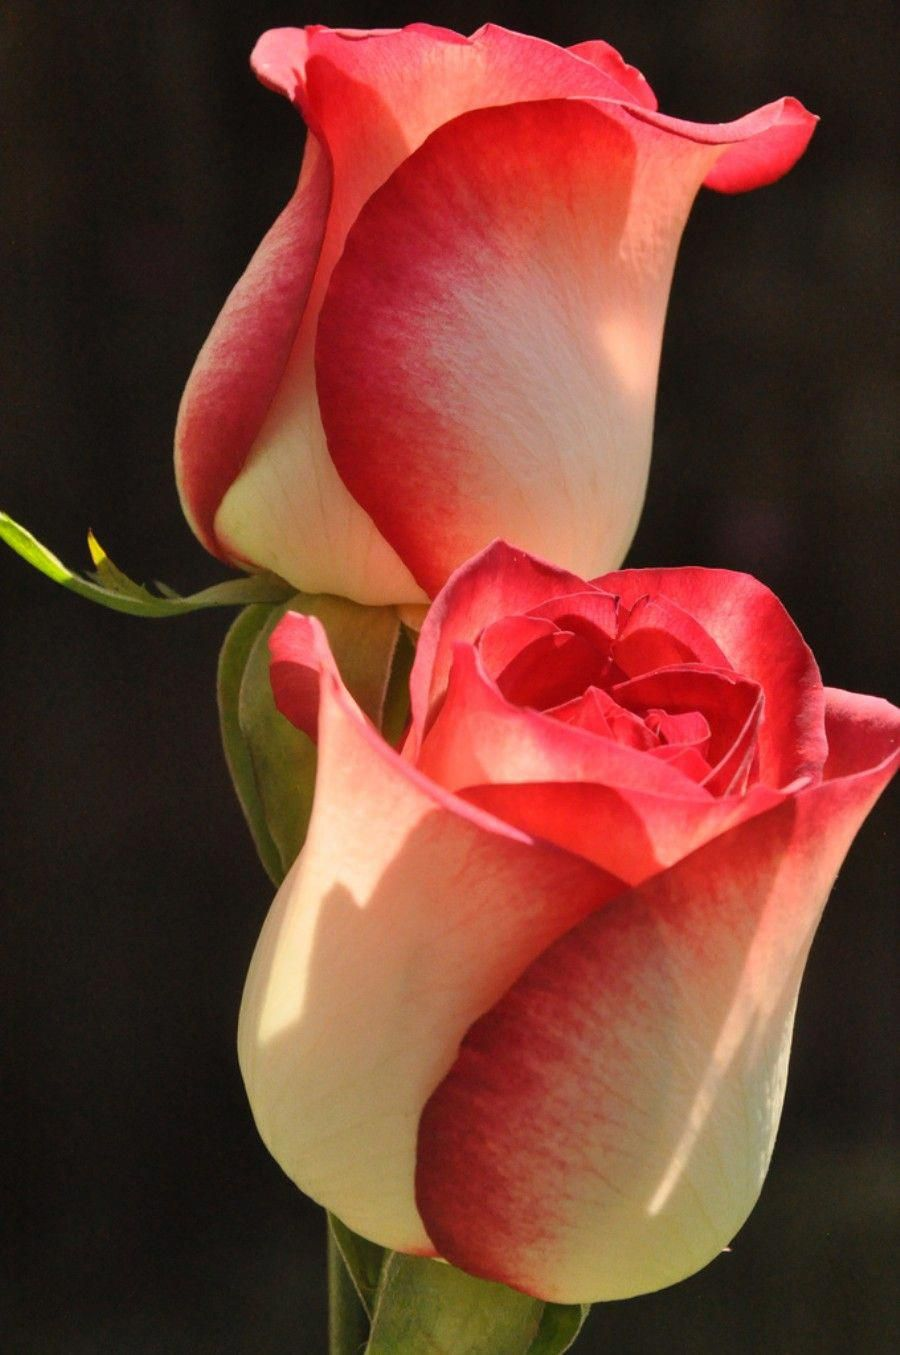 Shallow focus photography of red flower. beautiful flowers dp images #beautifulflowersromantic ...